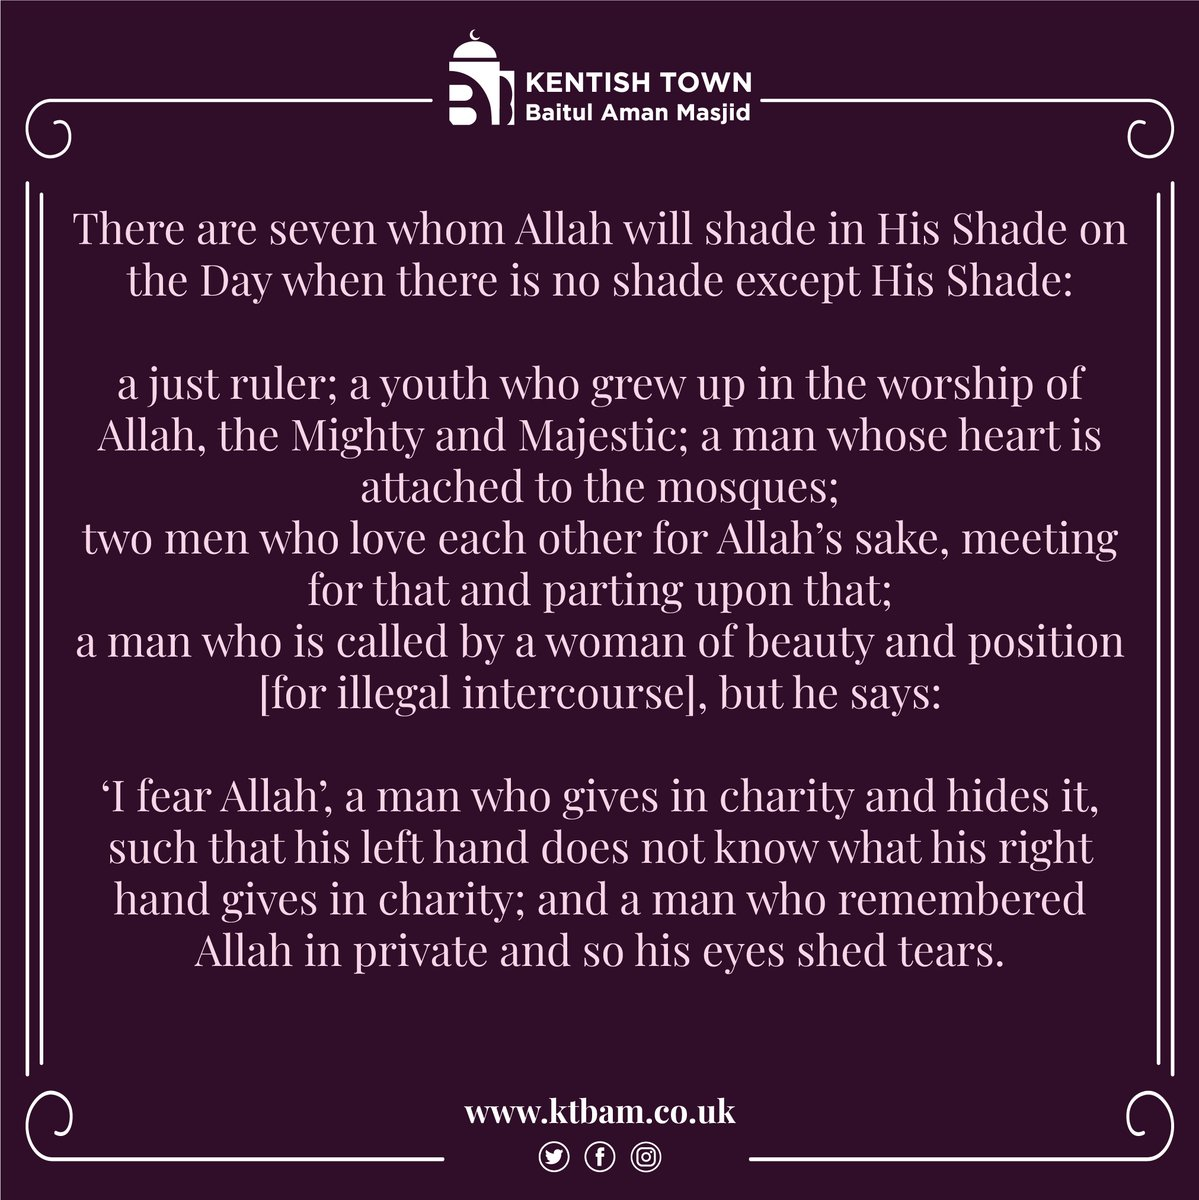 ⭐⭐⭐ . . . #ktbam #charity #goodwords #prophet #mosque #forgivness #muslim # islam #Allah #messenger #Ramadhan #love #your #brothers #faith #purity #peace https://t.co/vCxu1fEoLA